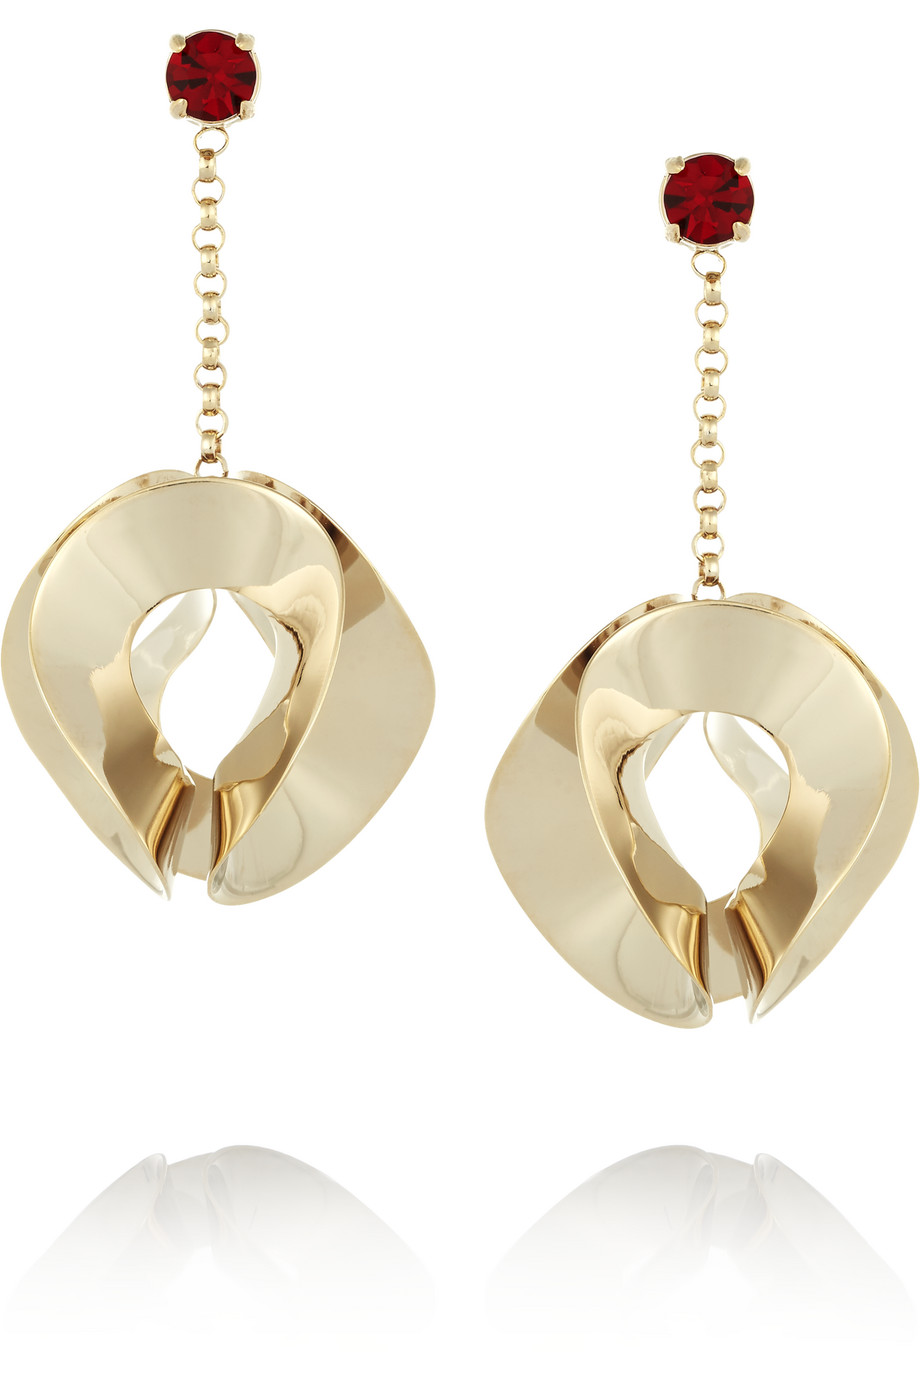 Etro Gold-Plated Crystal Earrings, Women's